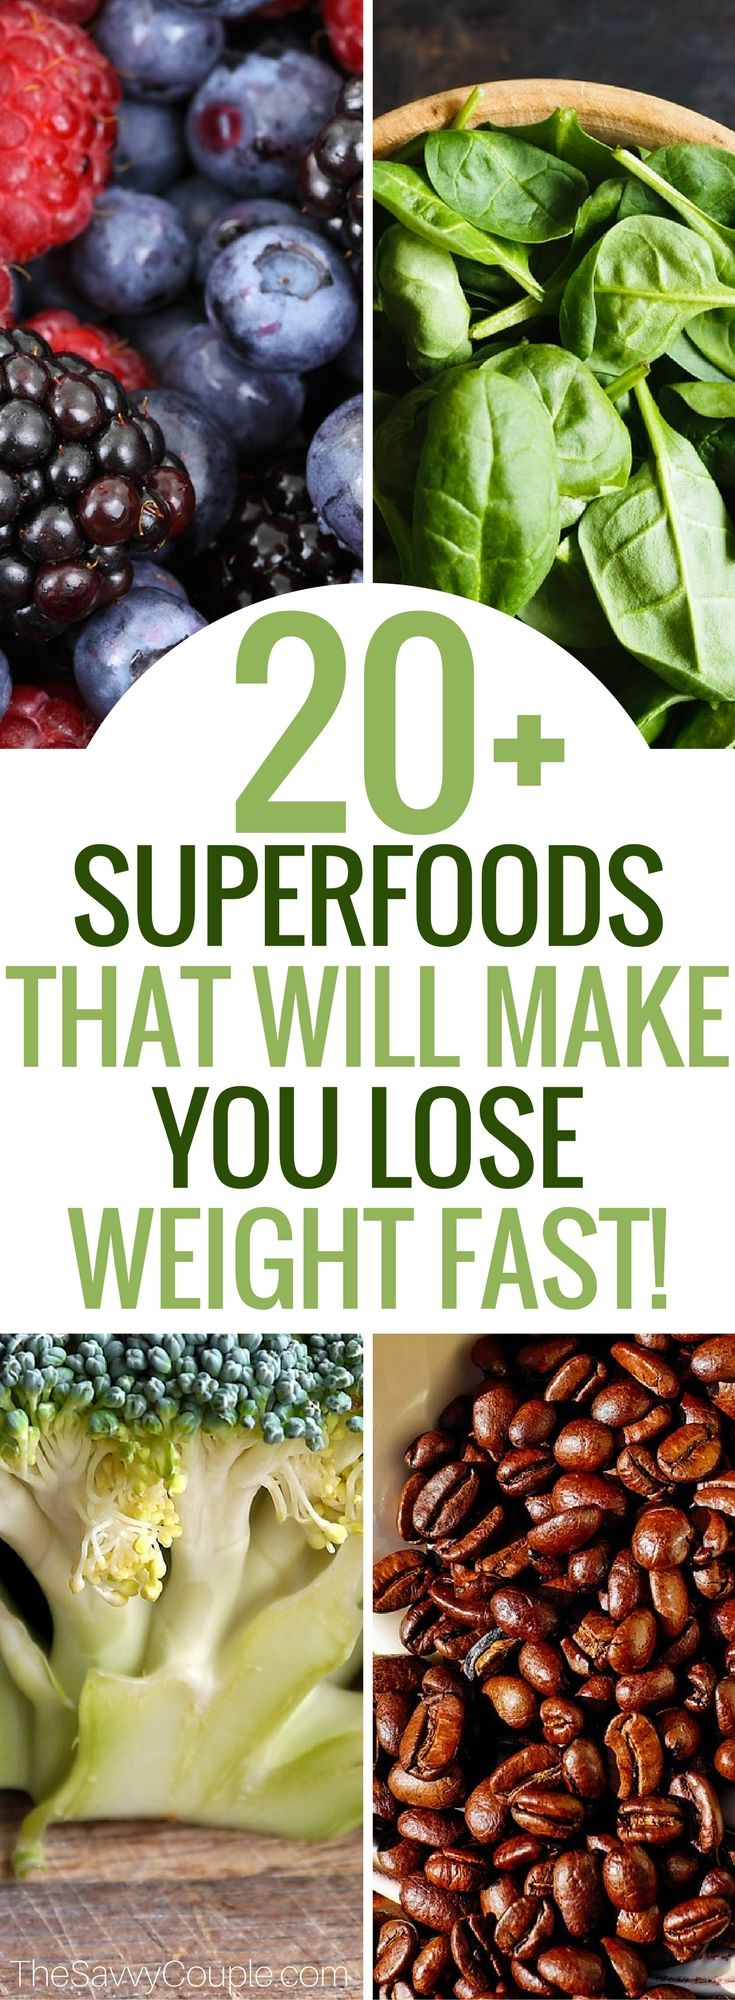 These zero calorie foods are AMAZING! It's incredible how many options we have to eat healthy when we are trying to lose weight. I am so glad I found this list to refer back to during my weight loss journey. Pin this!  via @TheSavvyCouple